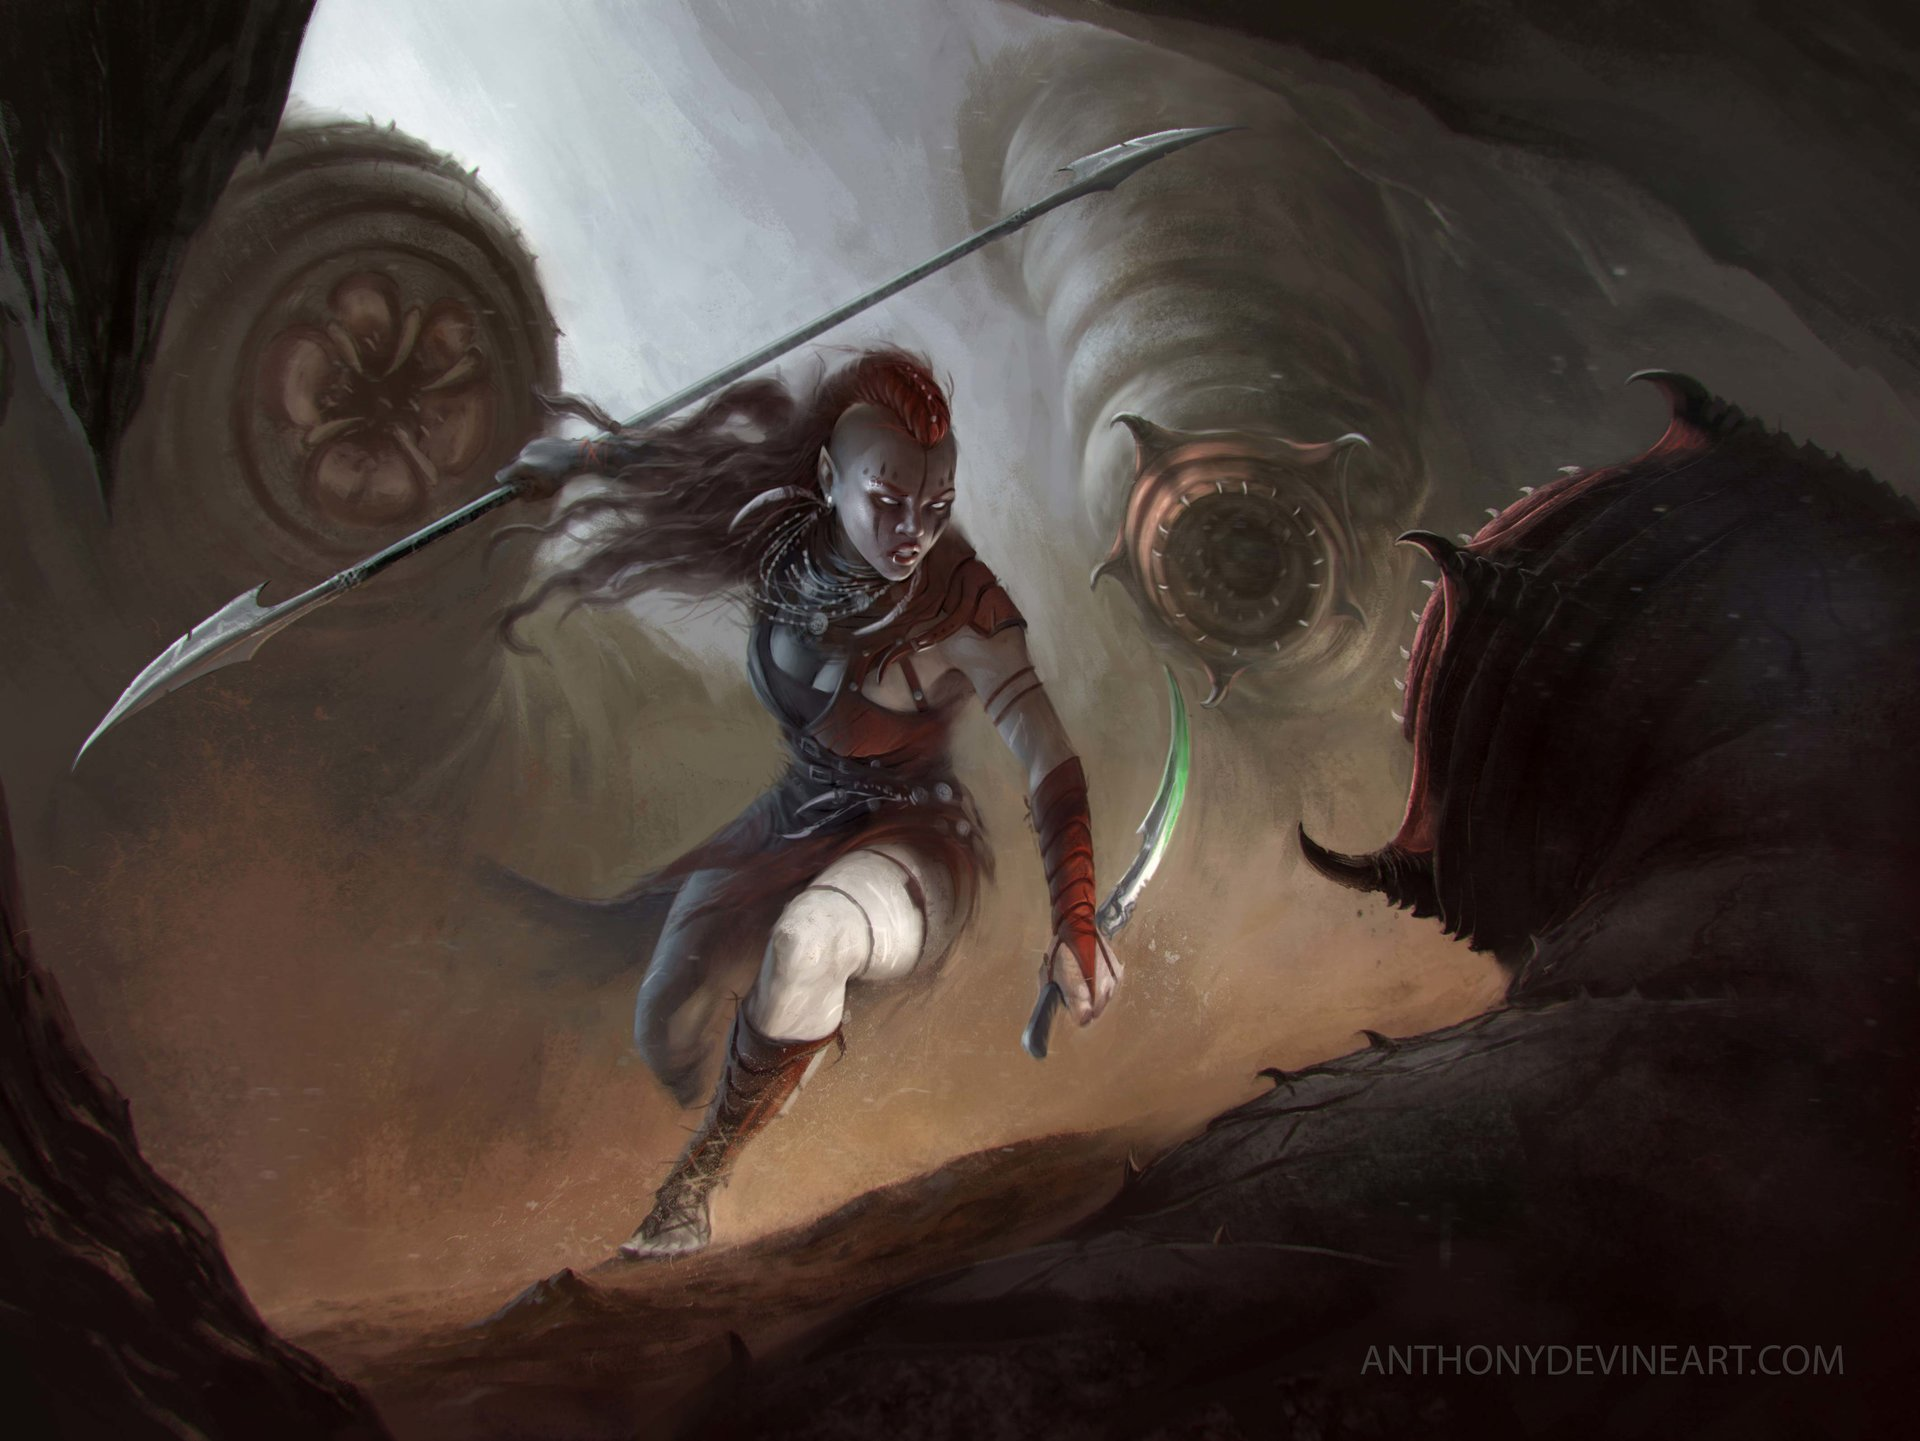 Anthony devine huntress by anthony devine